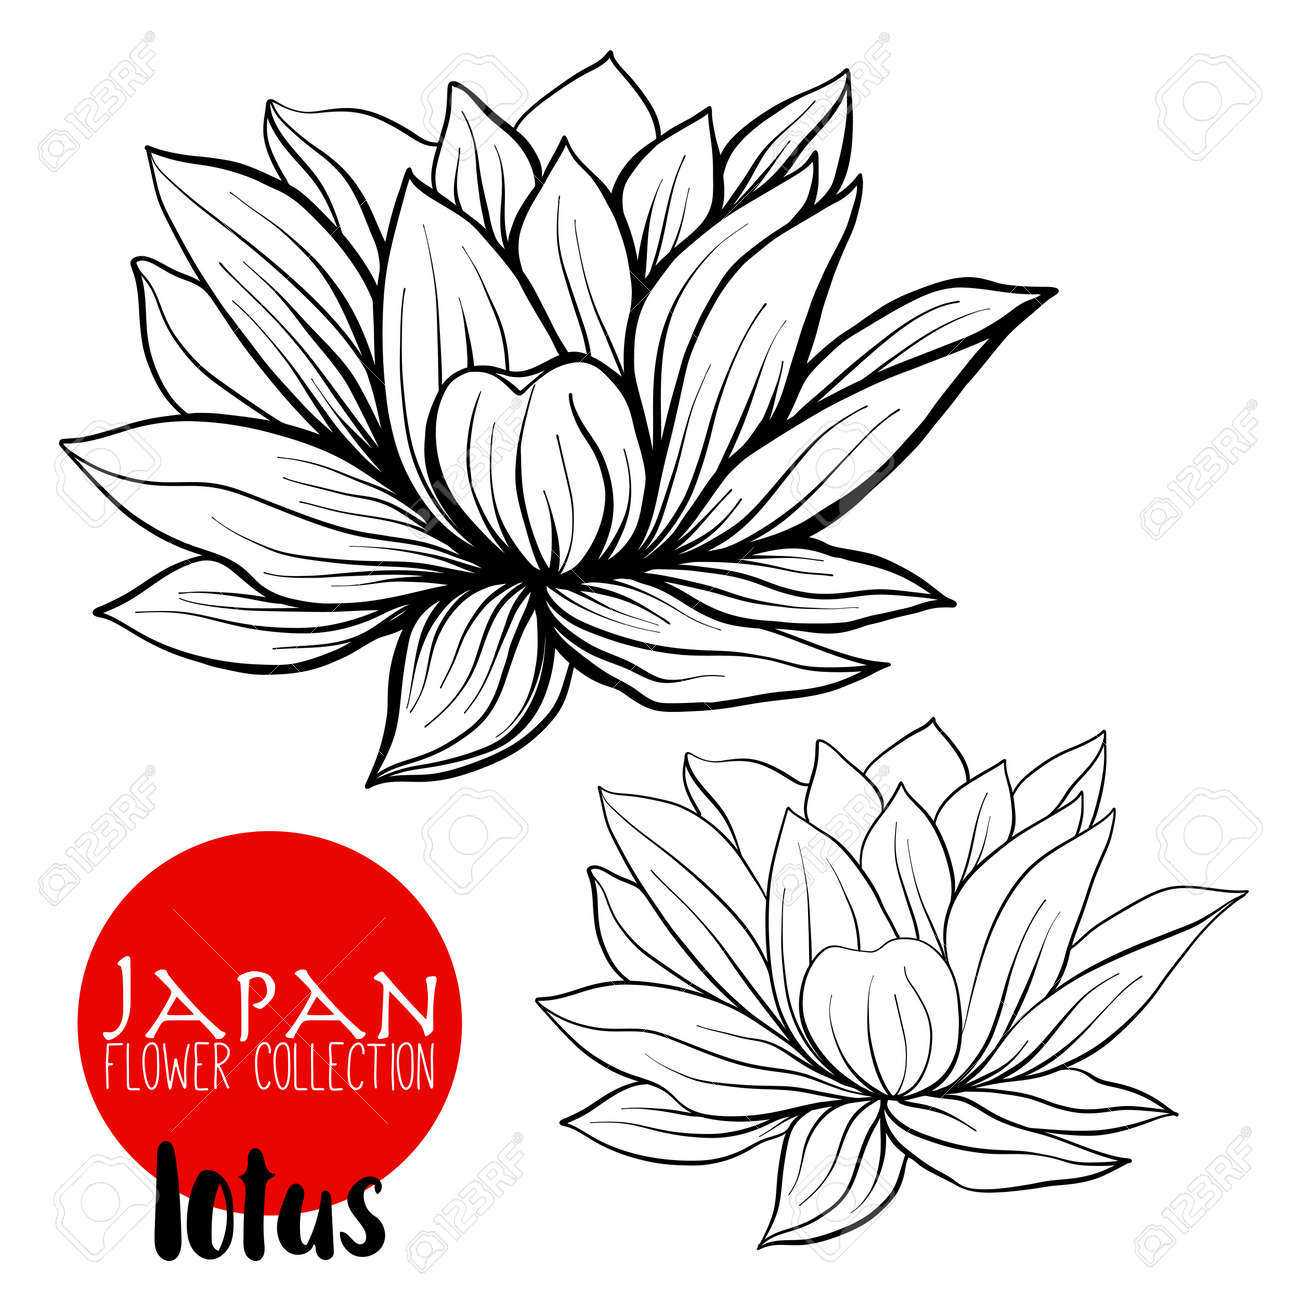 Lotus flowers stock line vector illustration botanic flowers lotus flowers stock line vector illustration botanic flowers outline drawing stock vector mightylinksfo